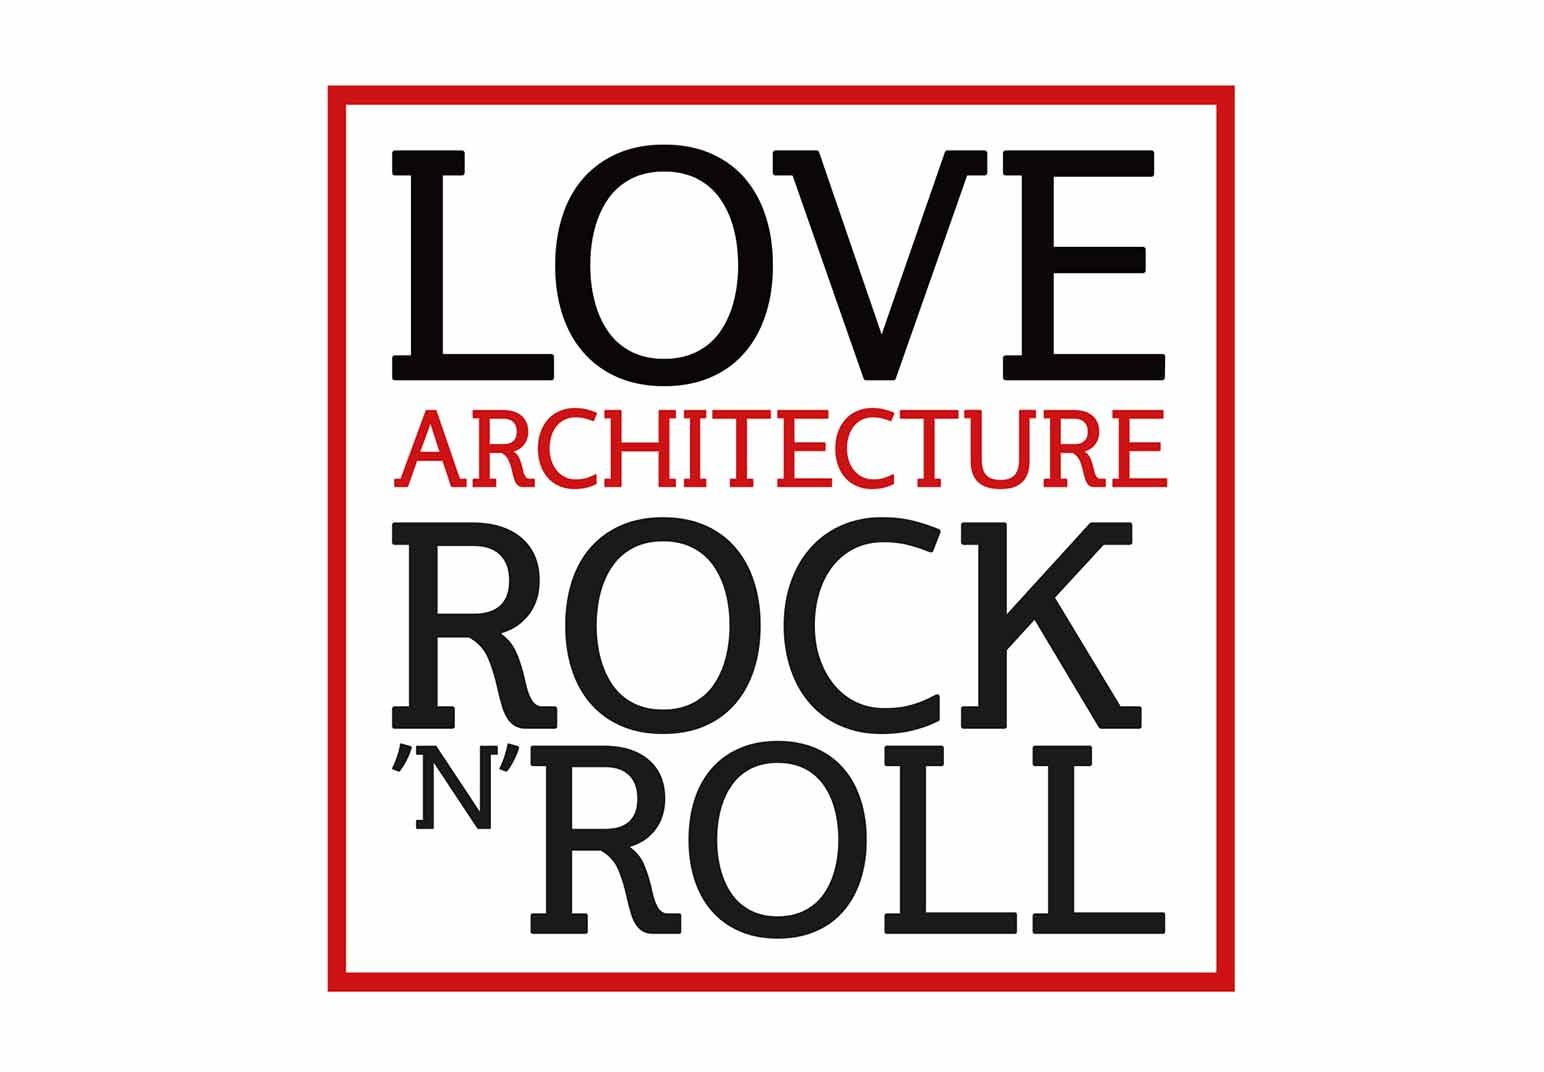 Love, architecture, rock 'n' roll